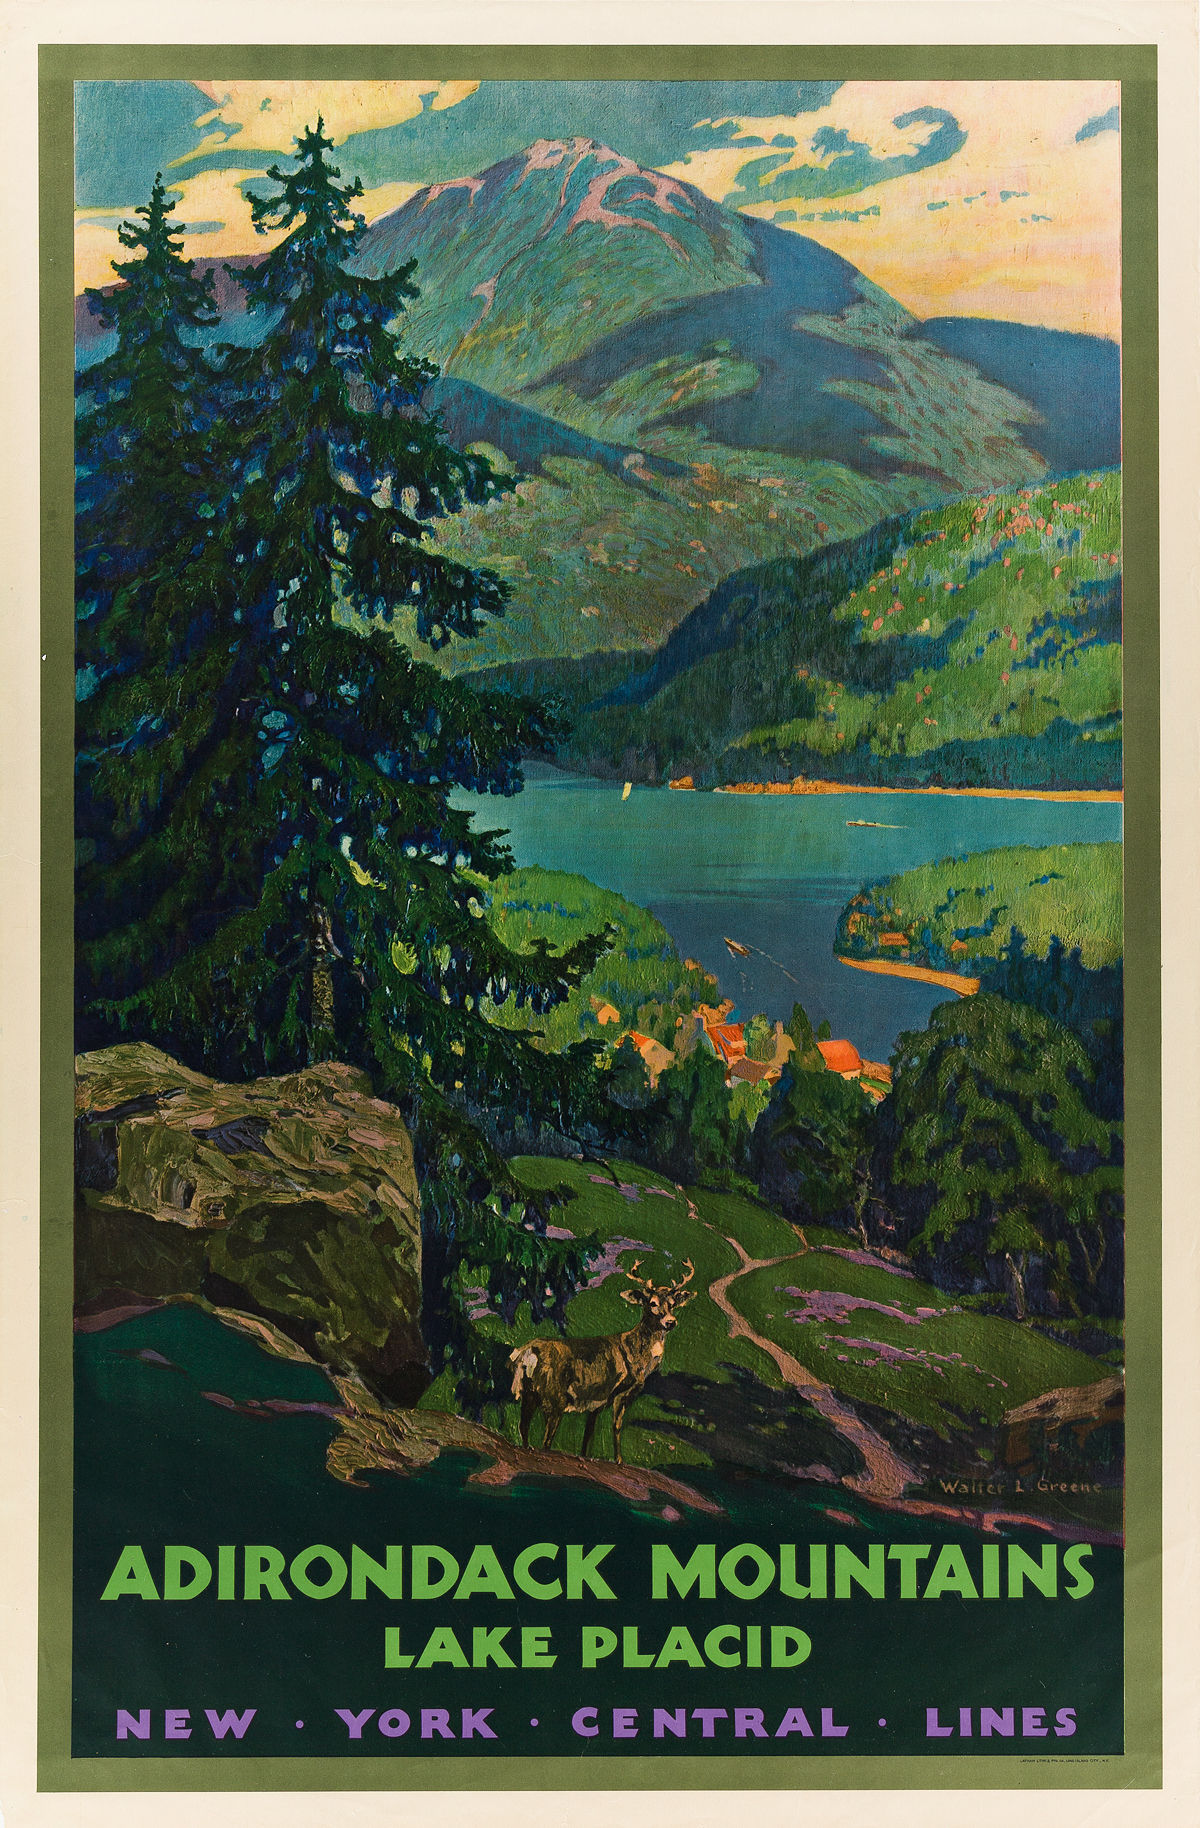 WALTER L. GREENE (1870-1956). ADIRONDACK MOUNTAINS / LAKE PLACID. 1930. 40x26 inches, 101x66 cm. Latham Litho and Printing Co., New Yor